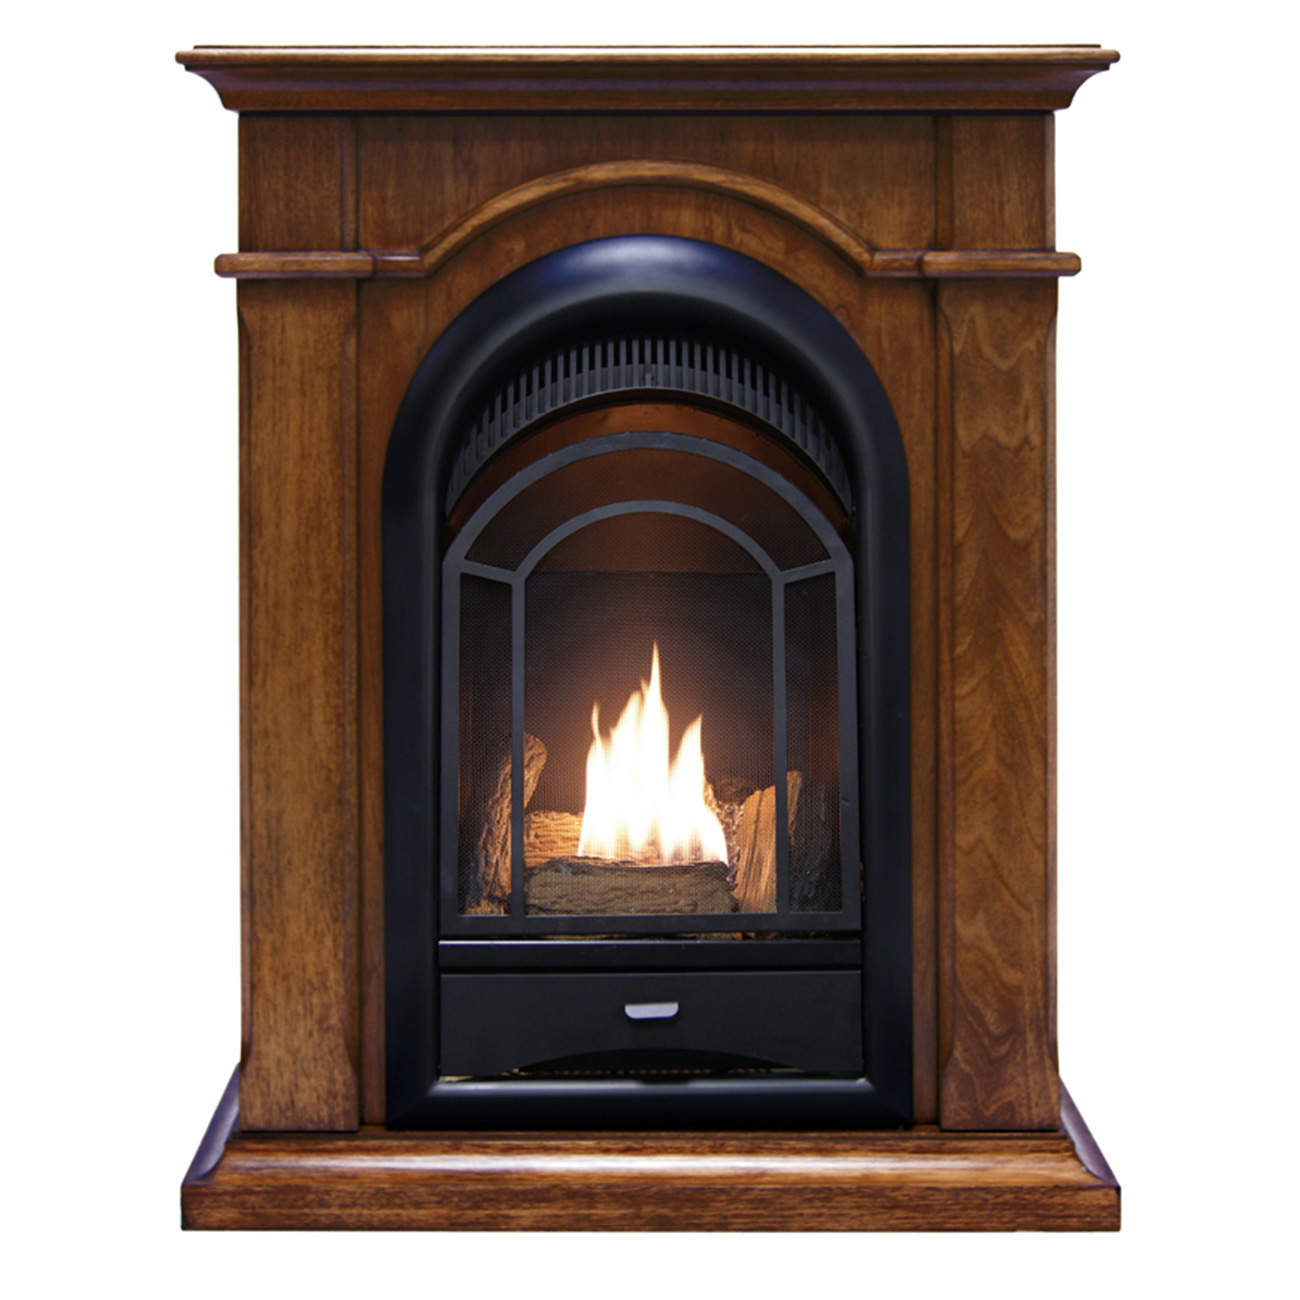 Space Heaters Fireplace Ventless Fireplace System Corner Combo Dual Fuel Walnut Finish 15 000 Btu